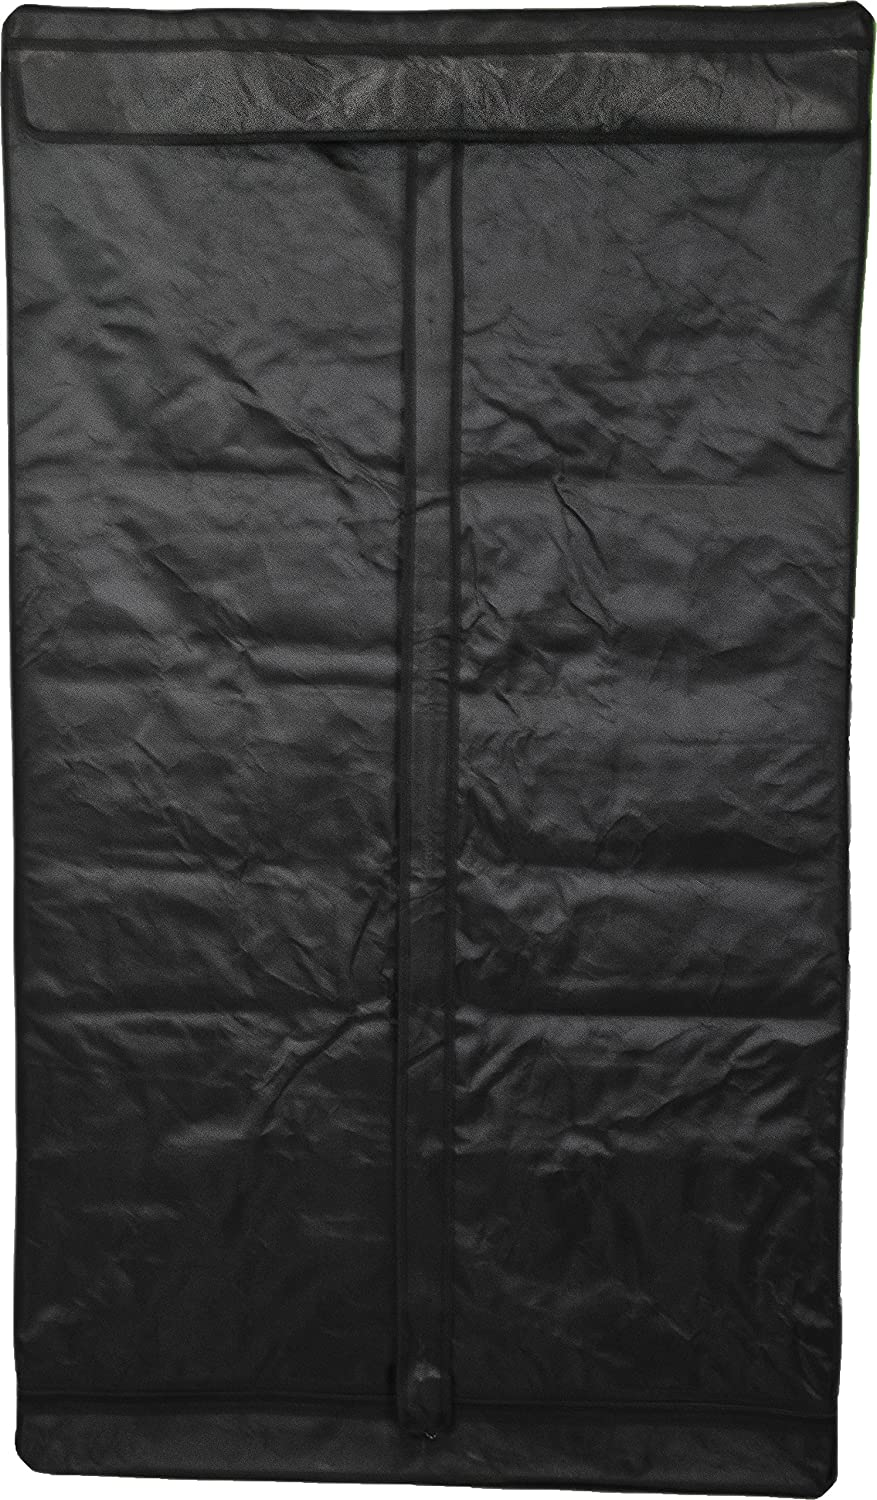 Amazon.com Aviditi PTU-68 Mylar Reflective Hydroponic Grow Tent with T-Zipper 36  Wide by 20  Deep by 63  High Industrial u0026 Scientific  sc 1 st  Amazon.com & Amazon.com: Aviditi PTU-68 Mylar Reflective Hydroponic Grow Tent ...